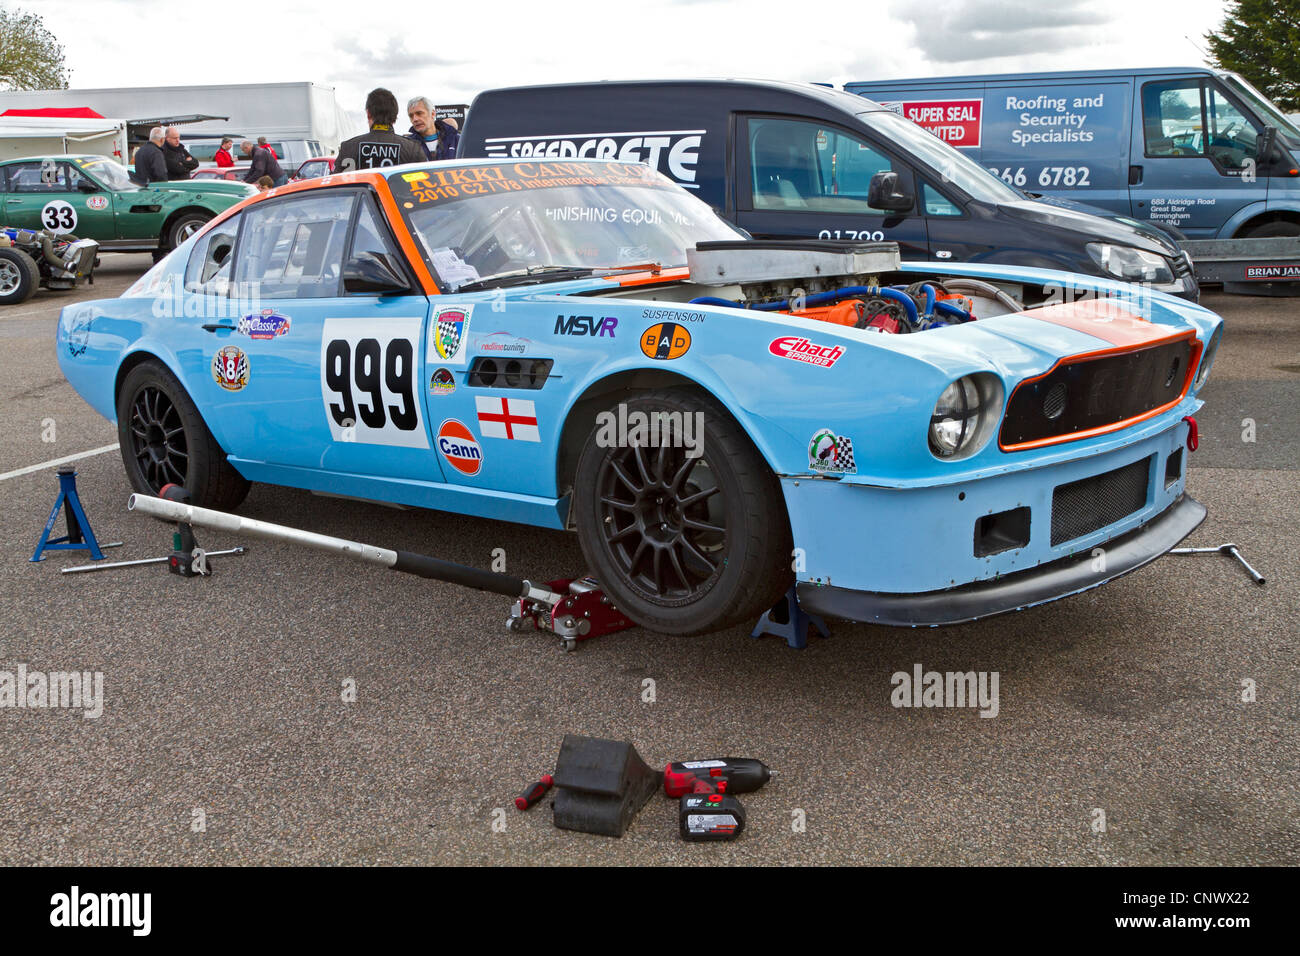 aston martin v8 vantage 1980. 1980 aston martin v8 vantage in the paddock being prepared for cscc hvra challenge